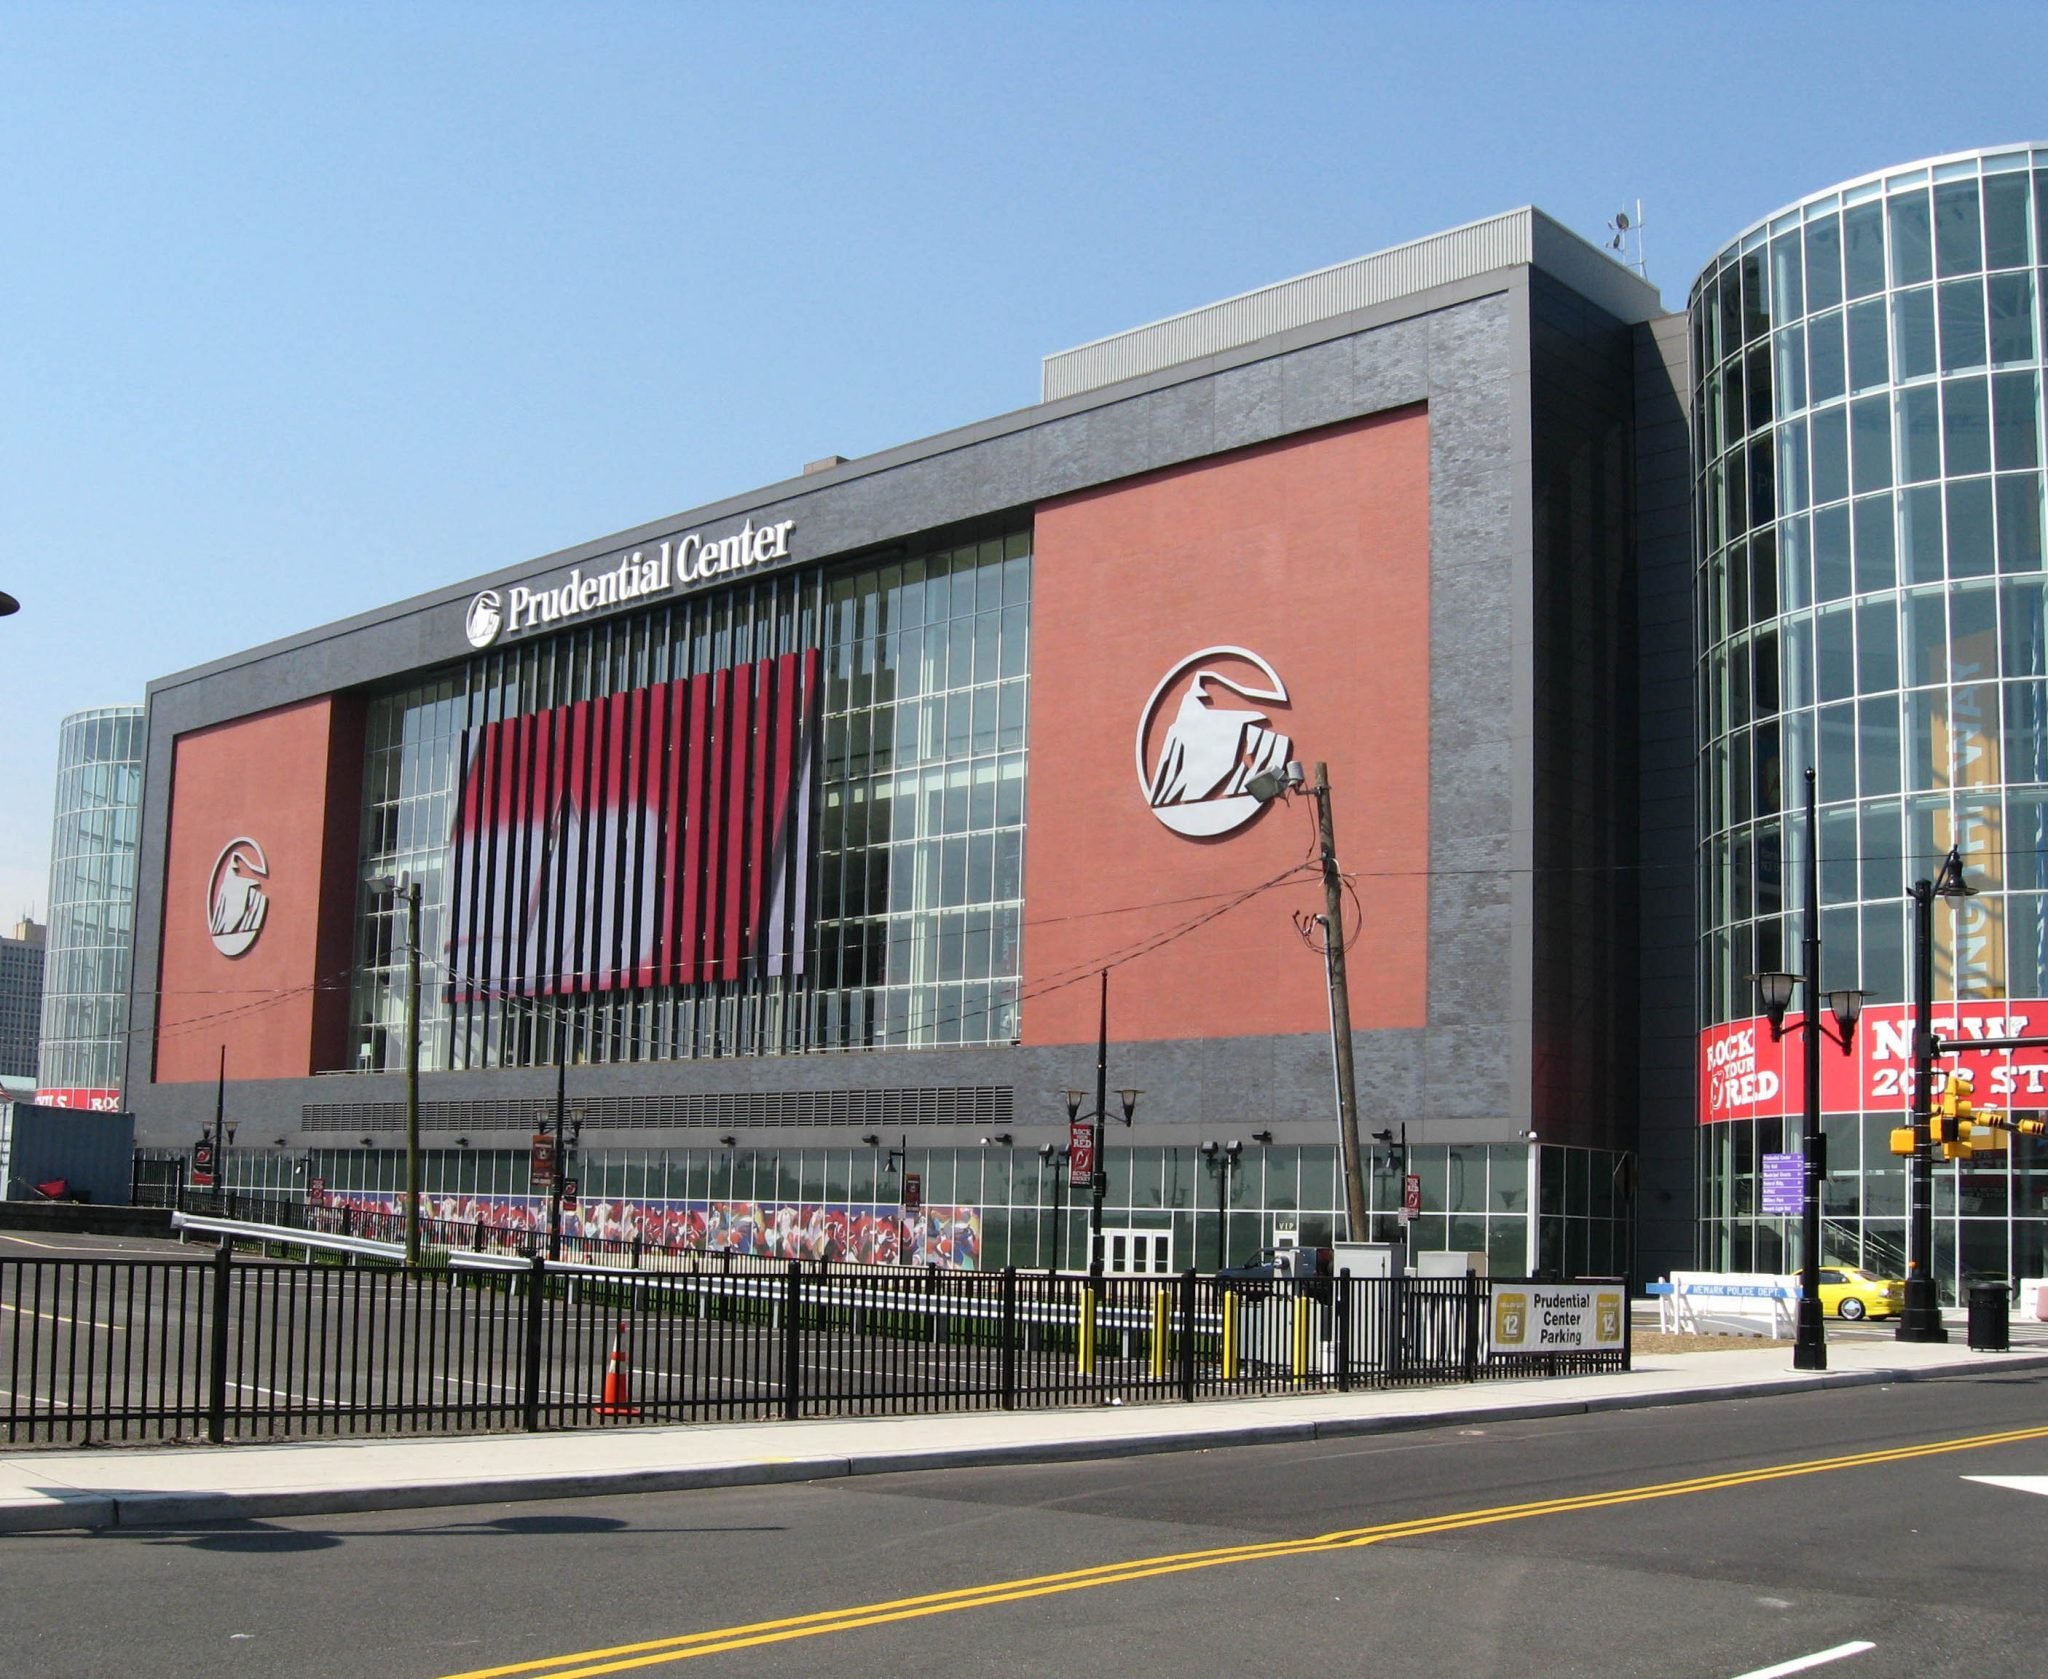 Prudential Center Parking